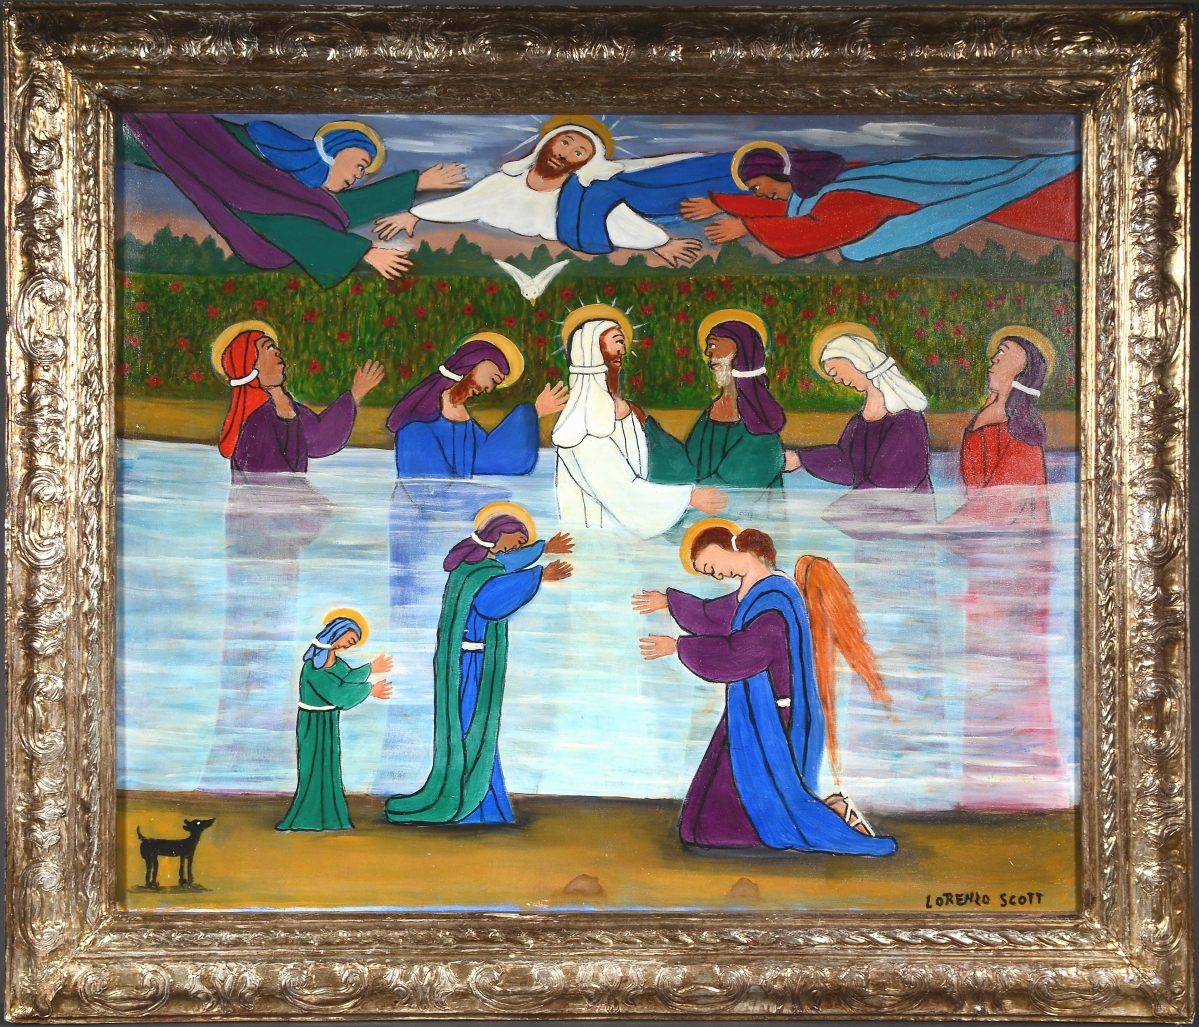 """""""He would take 2-by-4s and make the frame, and then he would cover them in Bondo, carve them and paint them gold. Almost all of his paintings have this gold frame that he did himself,"""" Slotin said of Georgia artist Lorenzo Scott (b 1934). This work, """"Baptism of Jesus,"""" handily surpassed the artist's previous auction record when it brought $13,125. The early 2000s oil on canvas came from the Ted Oliver collection and had been purchased directly from the artist."""